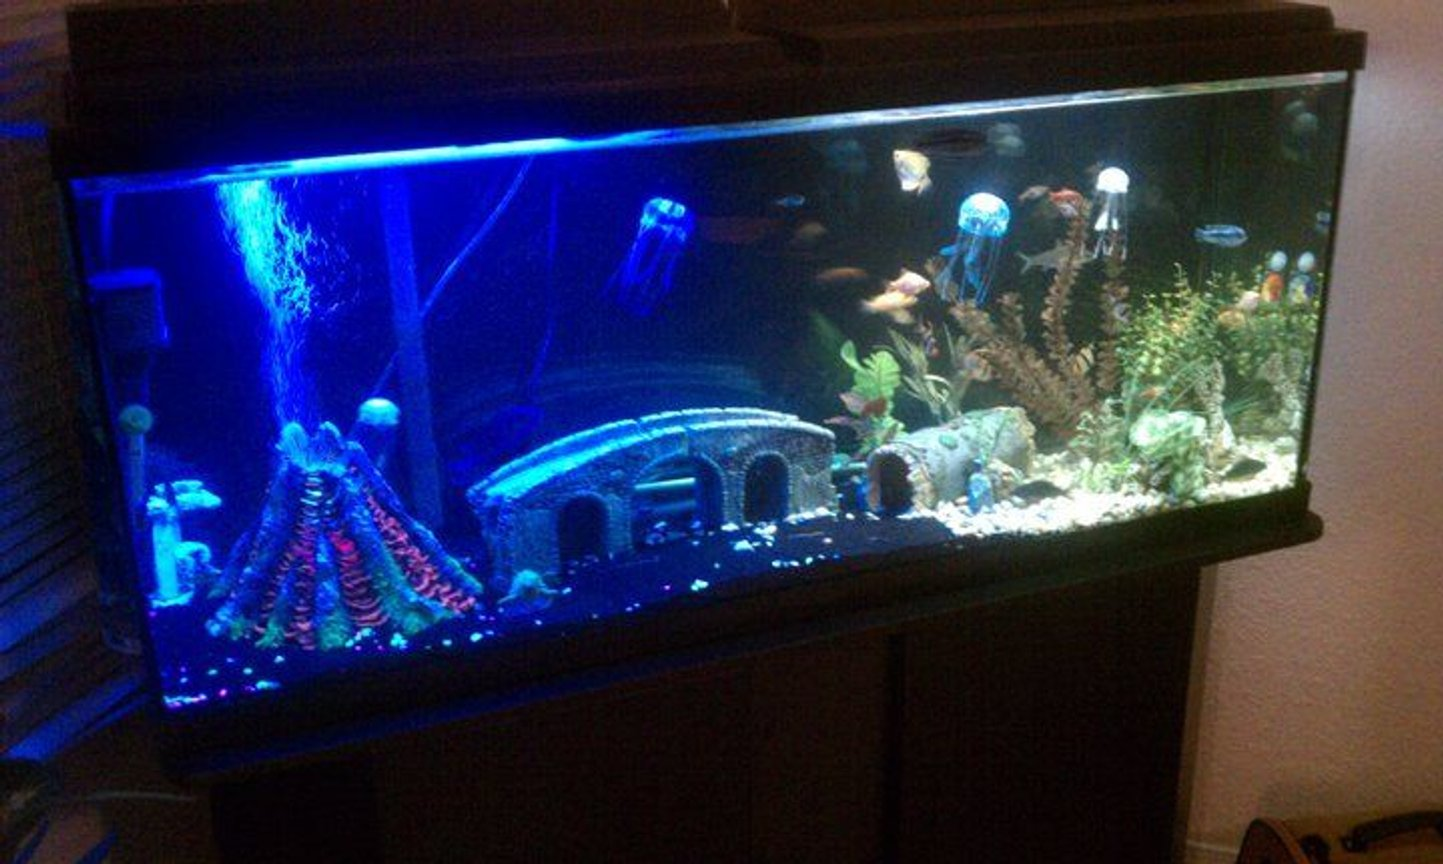 55 gallons freshwater fish tank (mostly fish and non-living decorations) - My 55gal